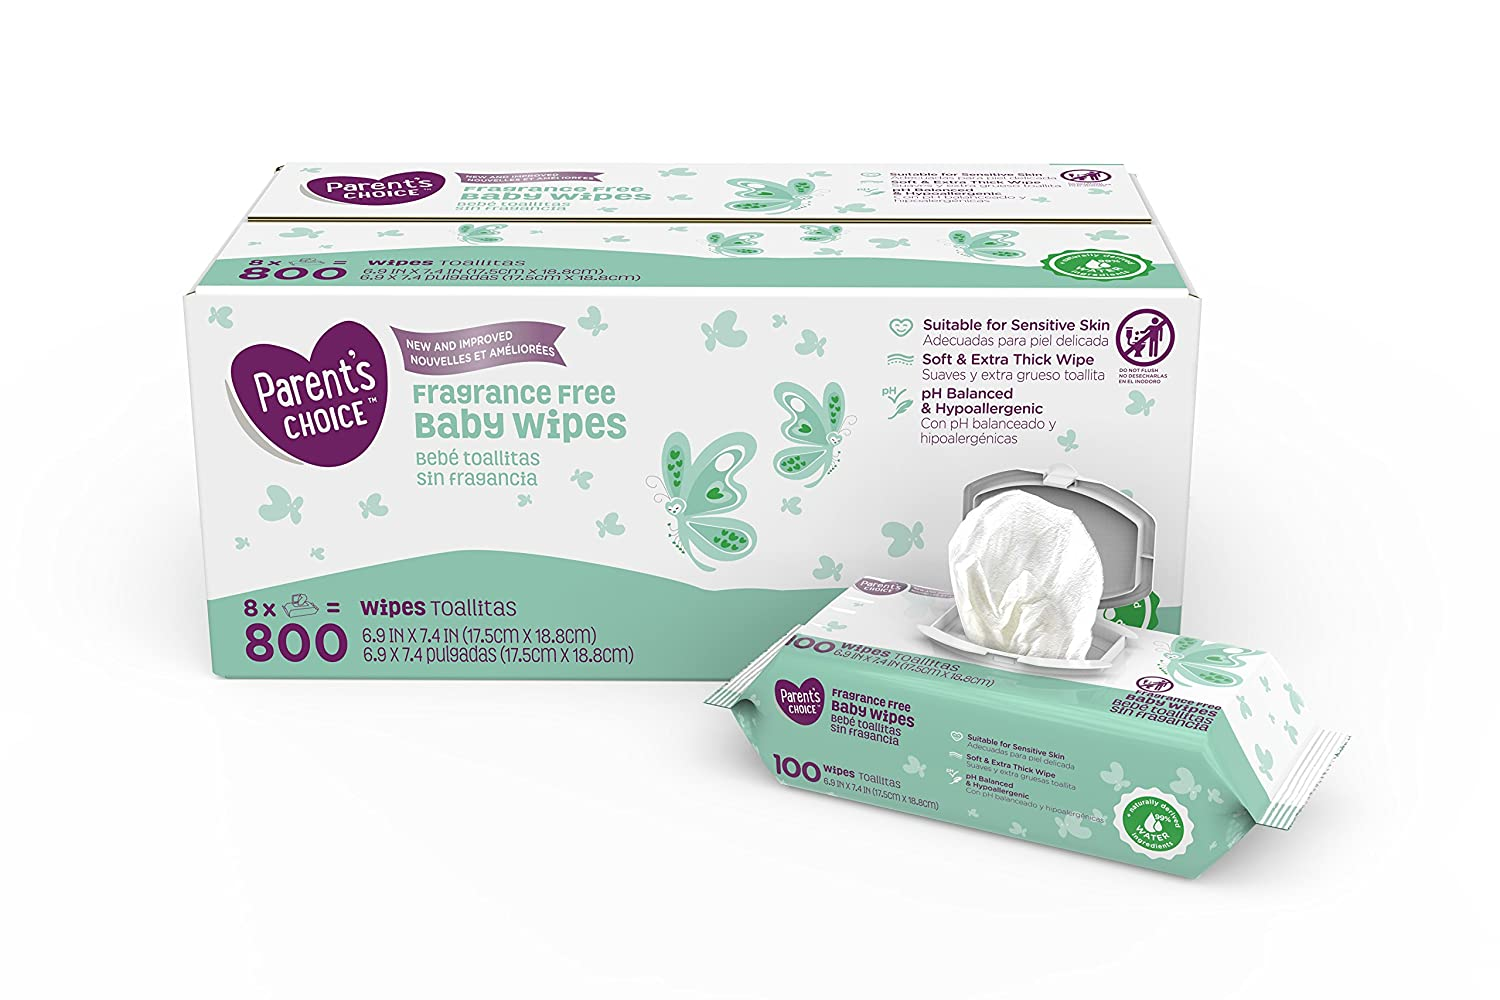 Amazon.com : Parents Choice Fragrance Free Baby Wipes, 8 packs of 100 (800 ct) : Everything Else